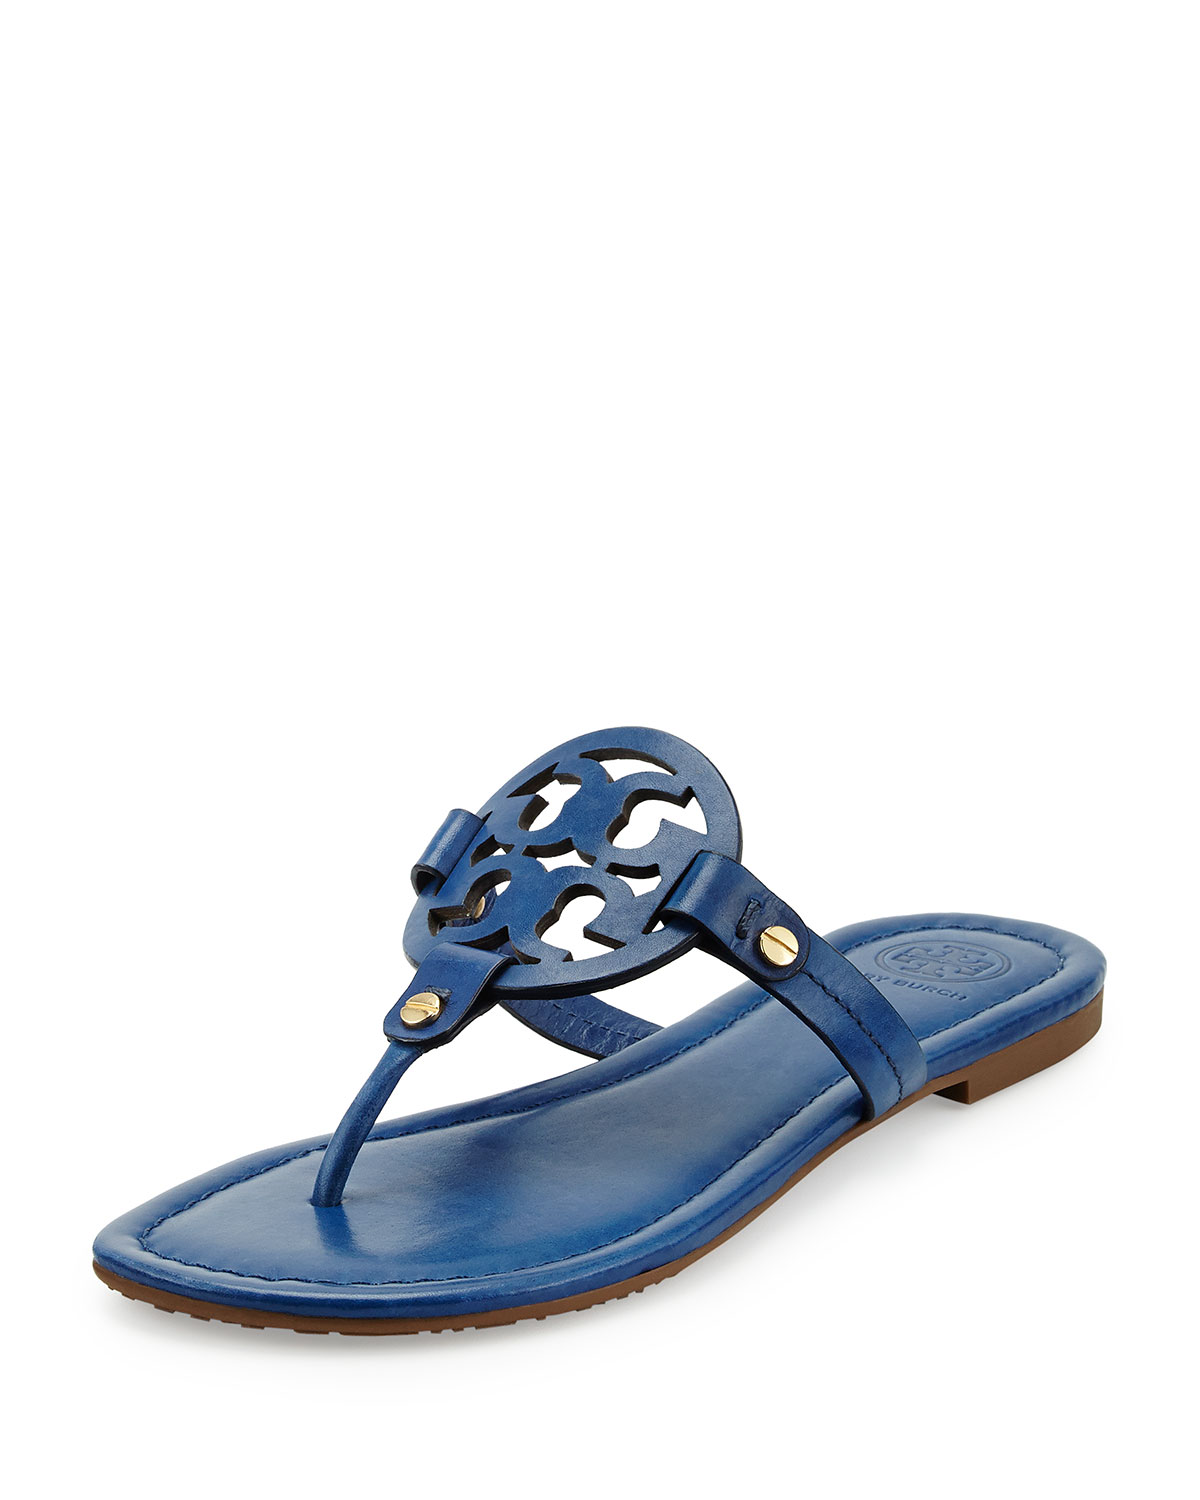 631d4257cc6ea4 Tory Burch Miller Leather Logo Thong Sandal